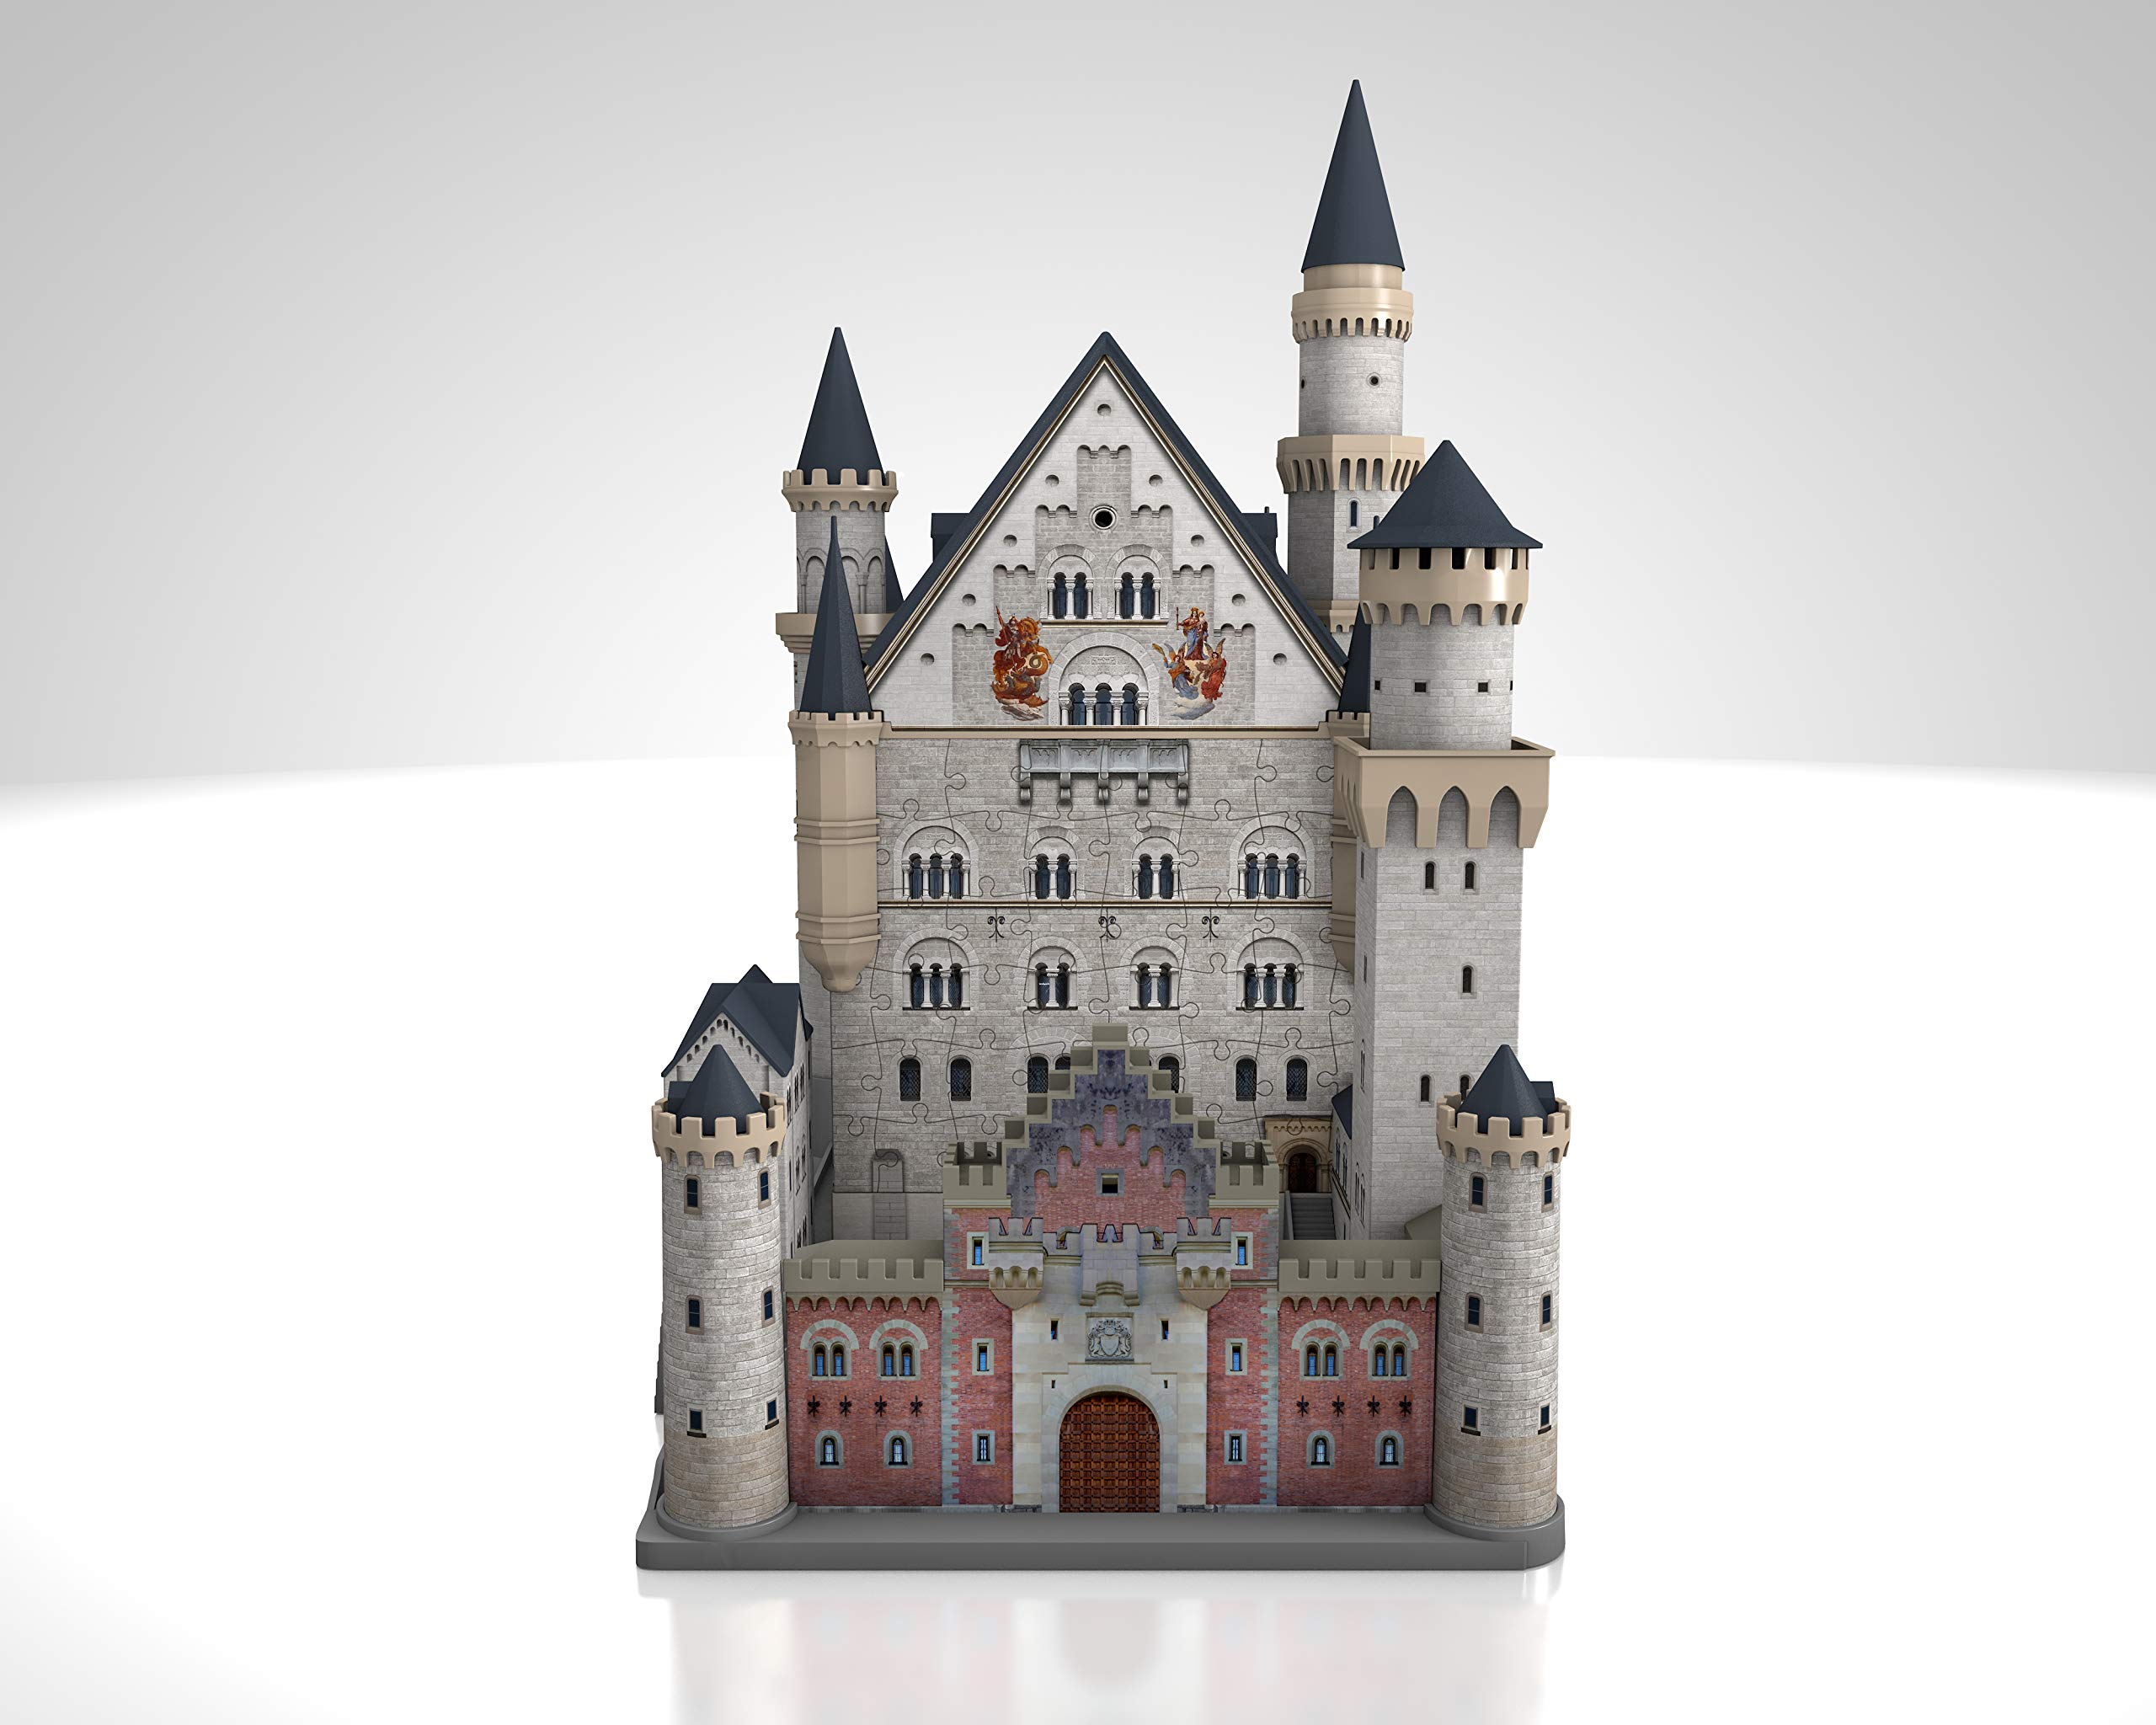 Ravensburger Neuschwanstein 216 Piece 3D Jigsaw Puzzle for Kids and Adults - Easy Click Technology Means Pieces Fit Together Perfectly